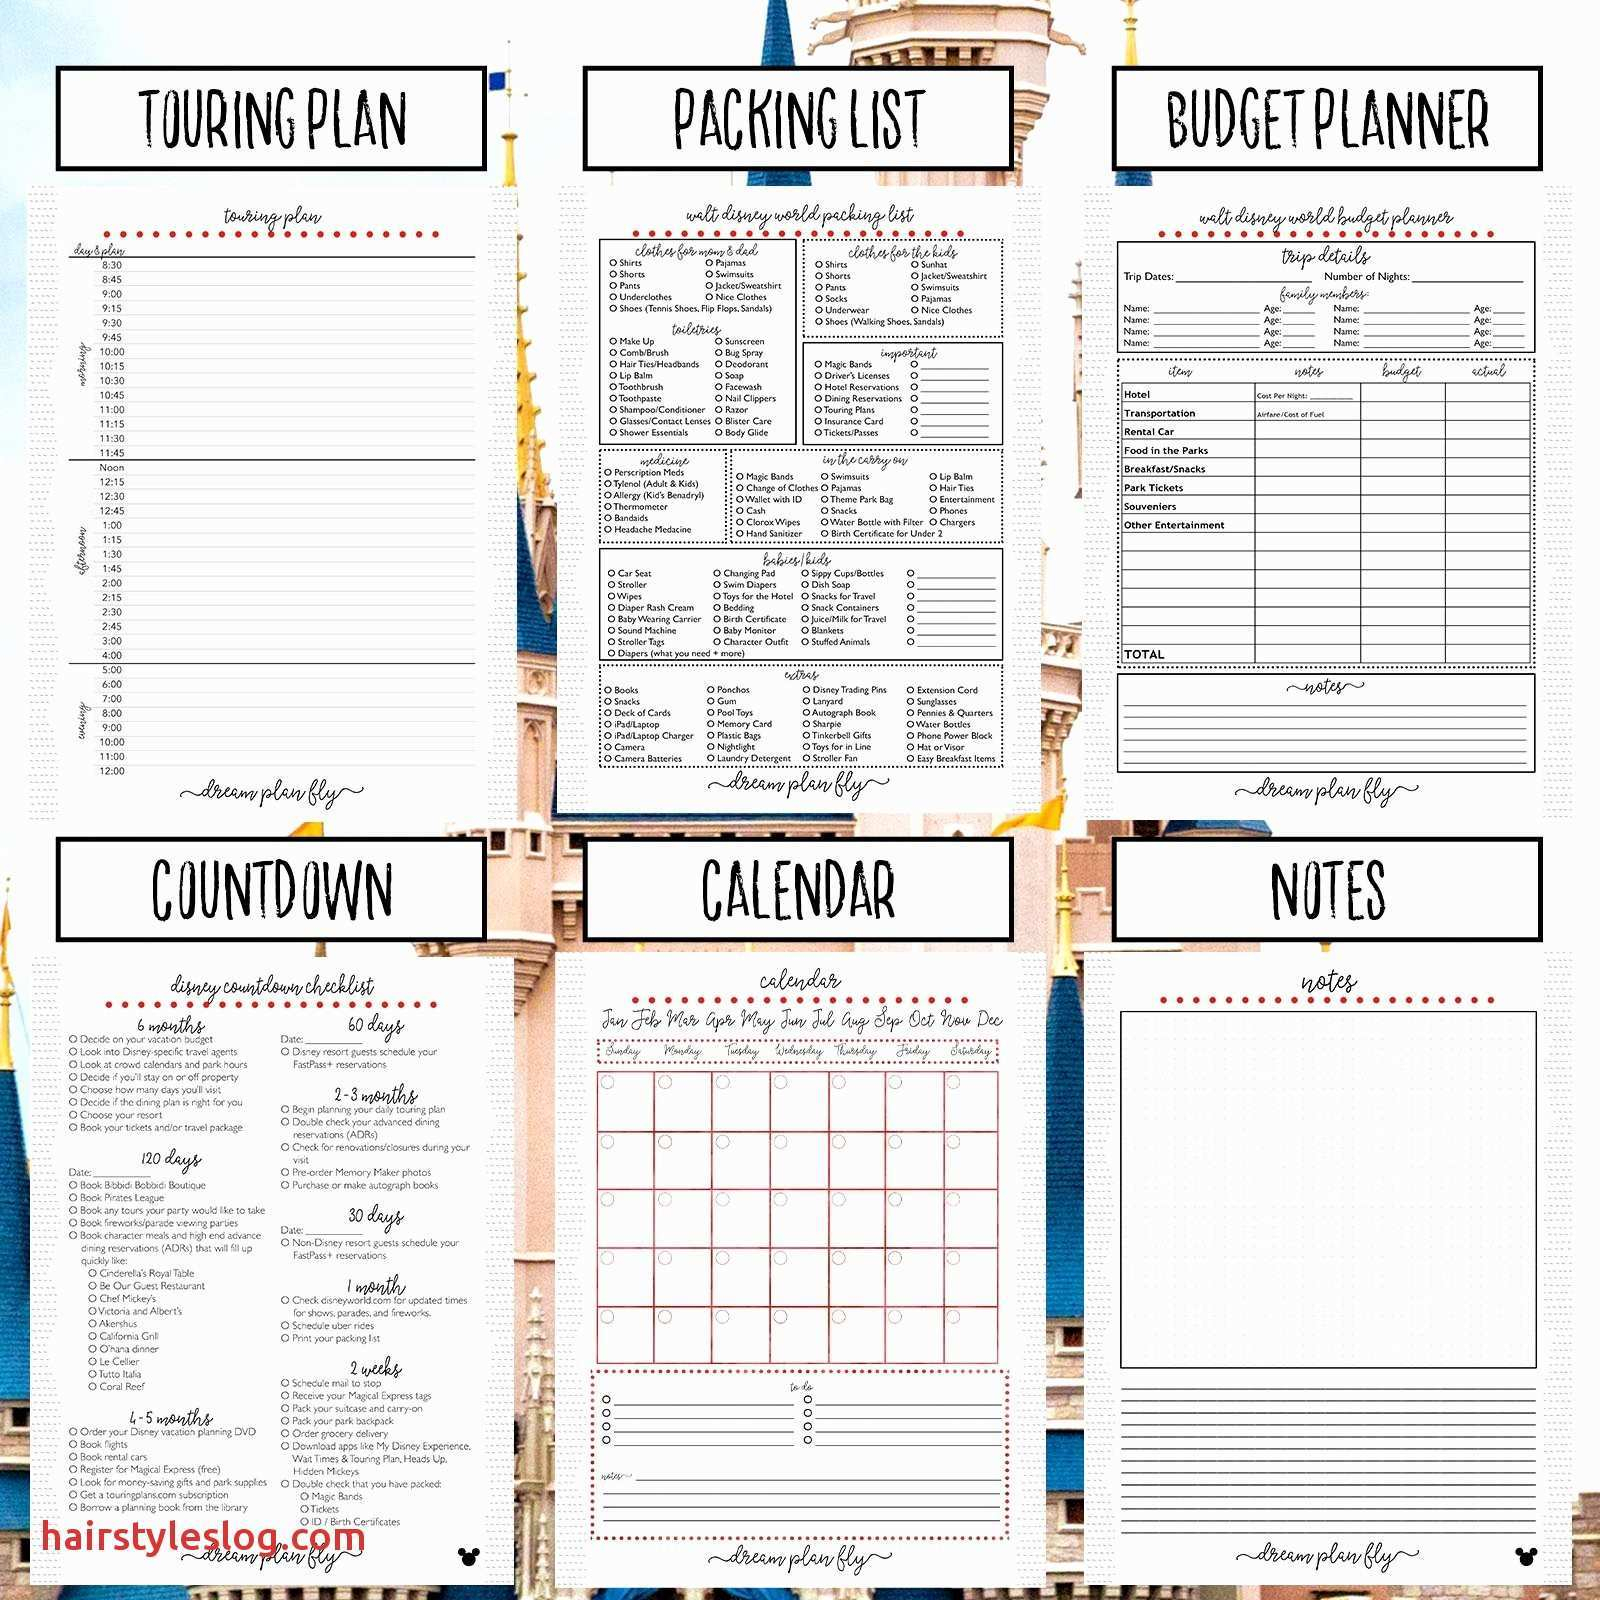 Black Friday Spreadsheet Inside Goodlooking Kitchen Table Black Friday Deals For Residence Ideas